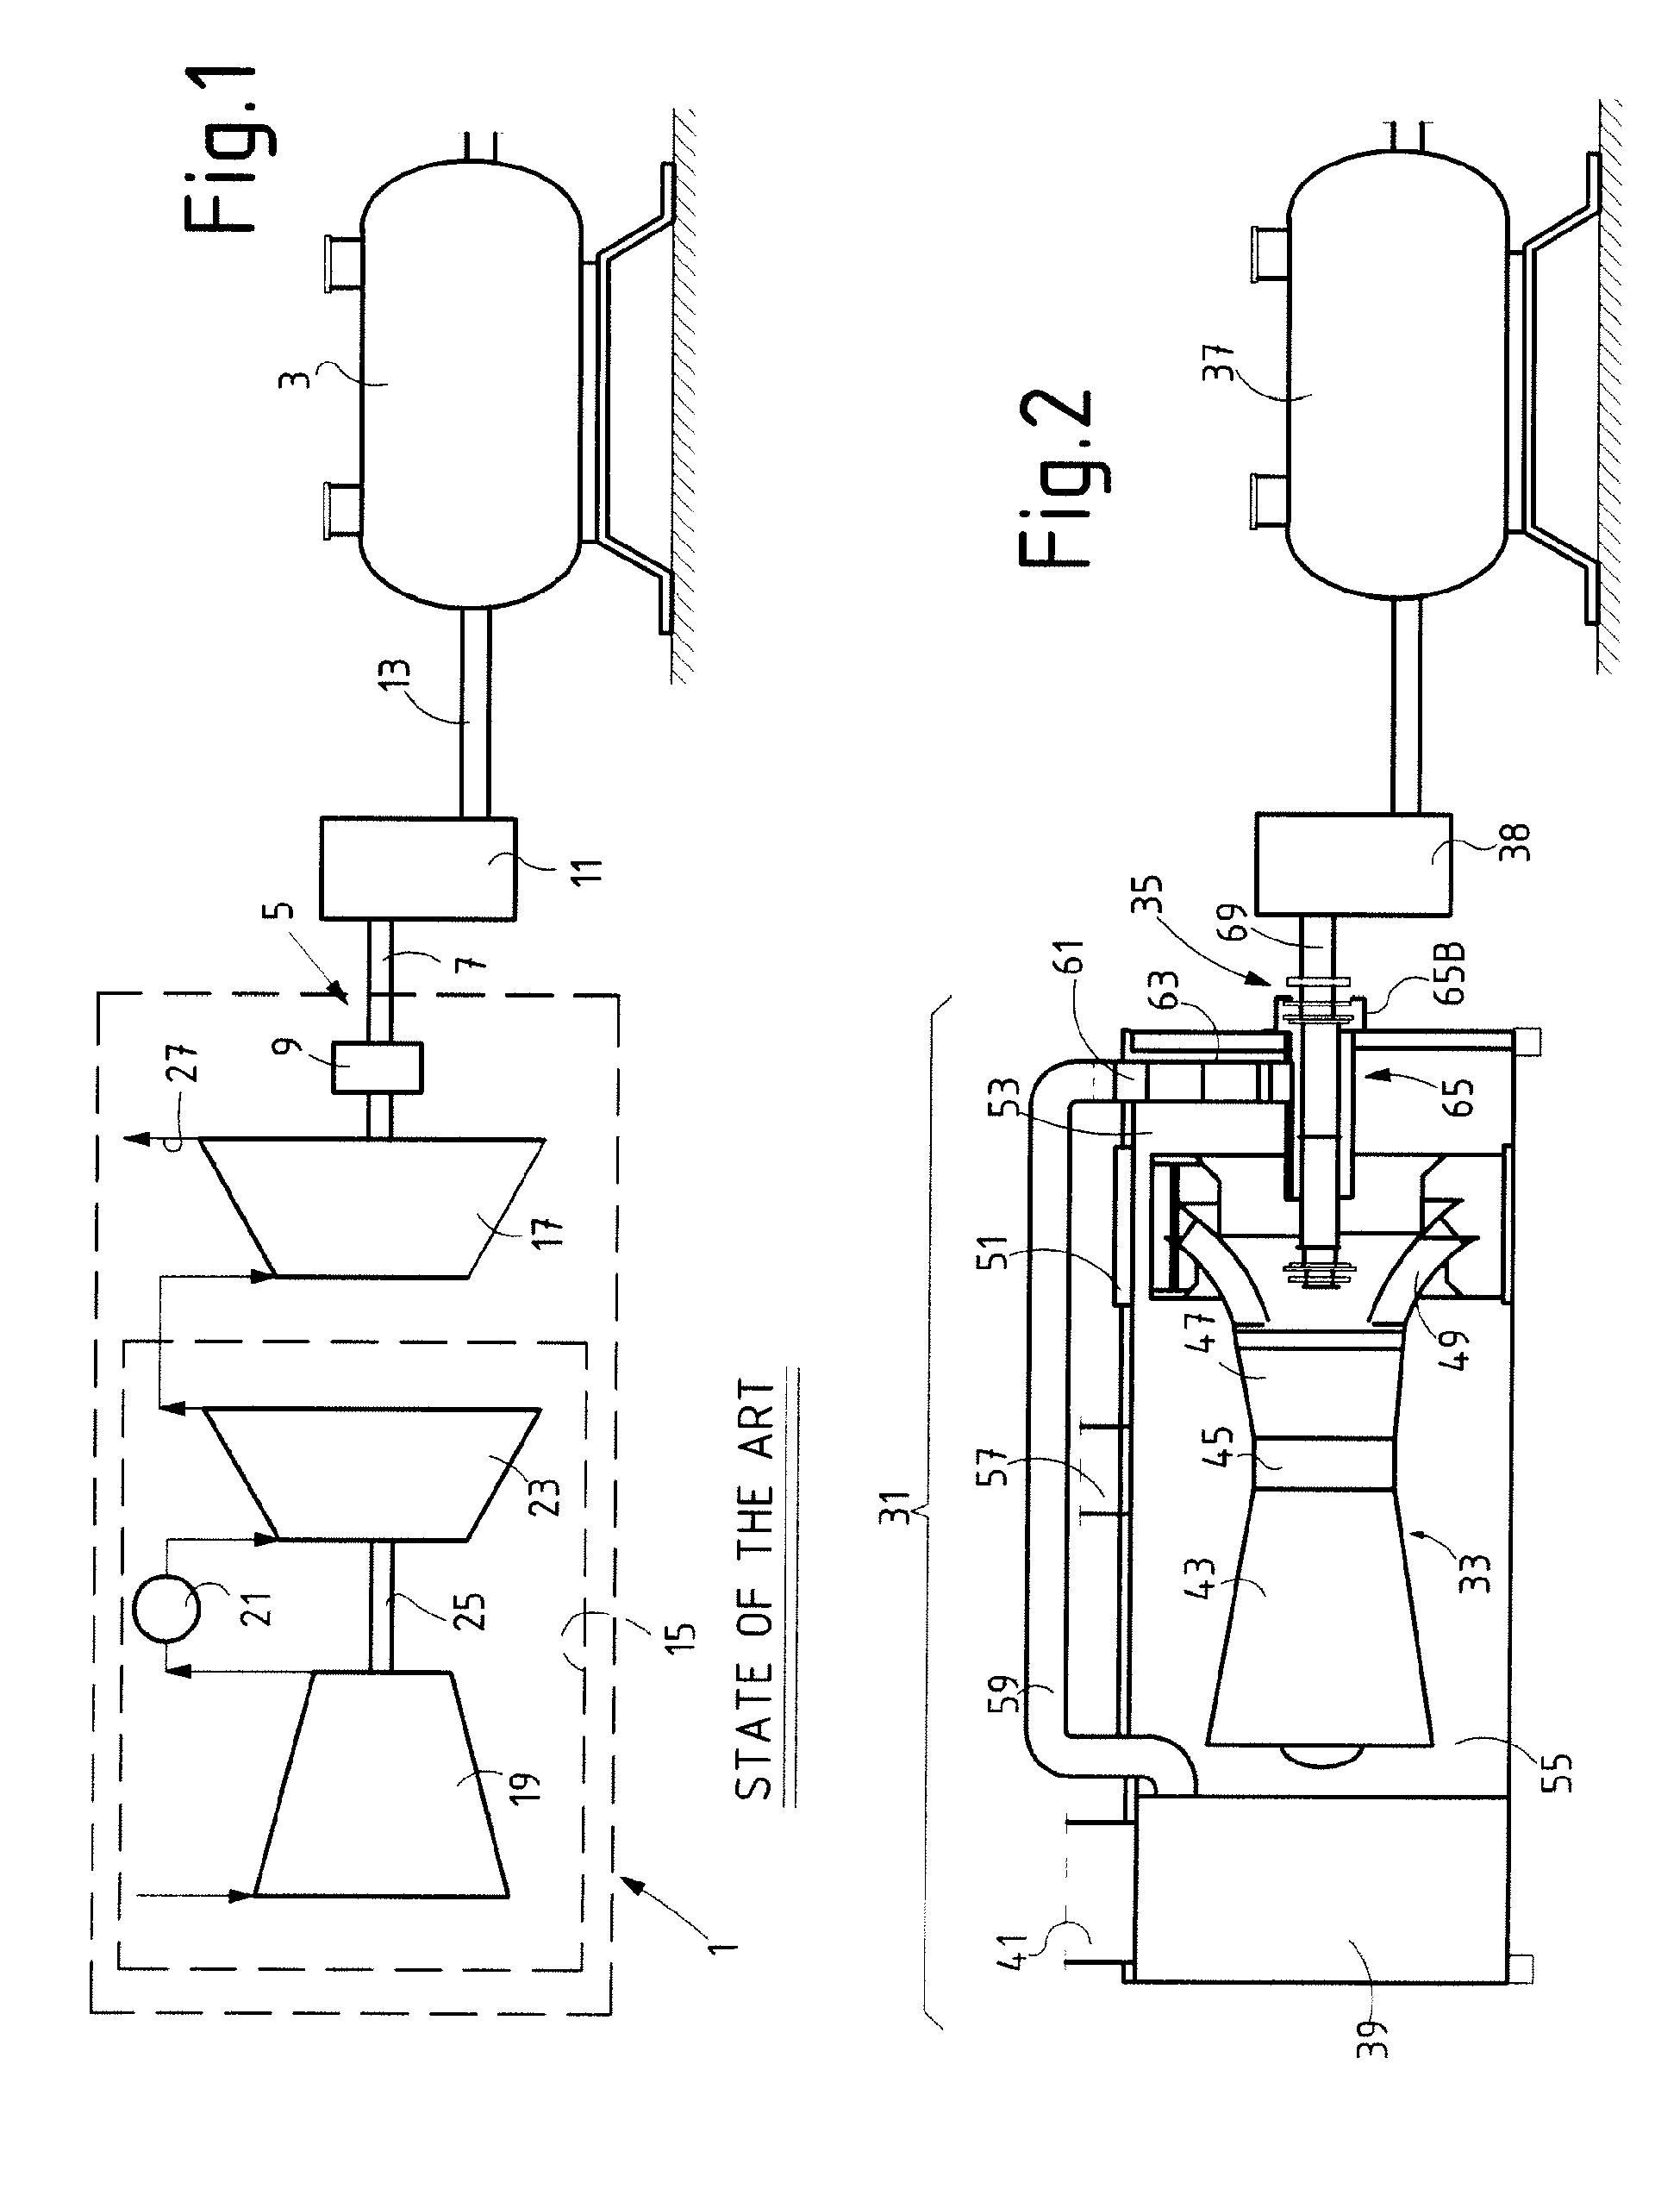 Patent EP A1 Cooling system for gas turbine load coupling